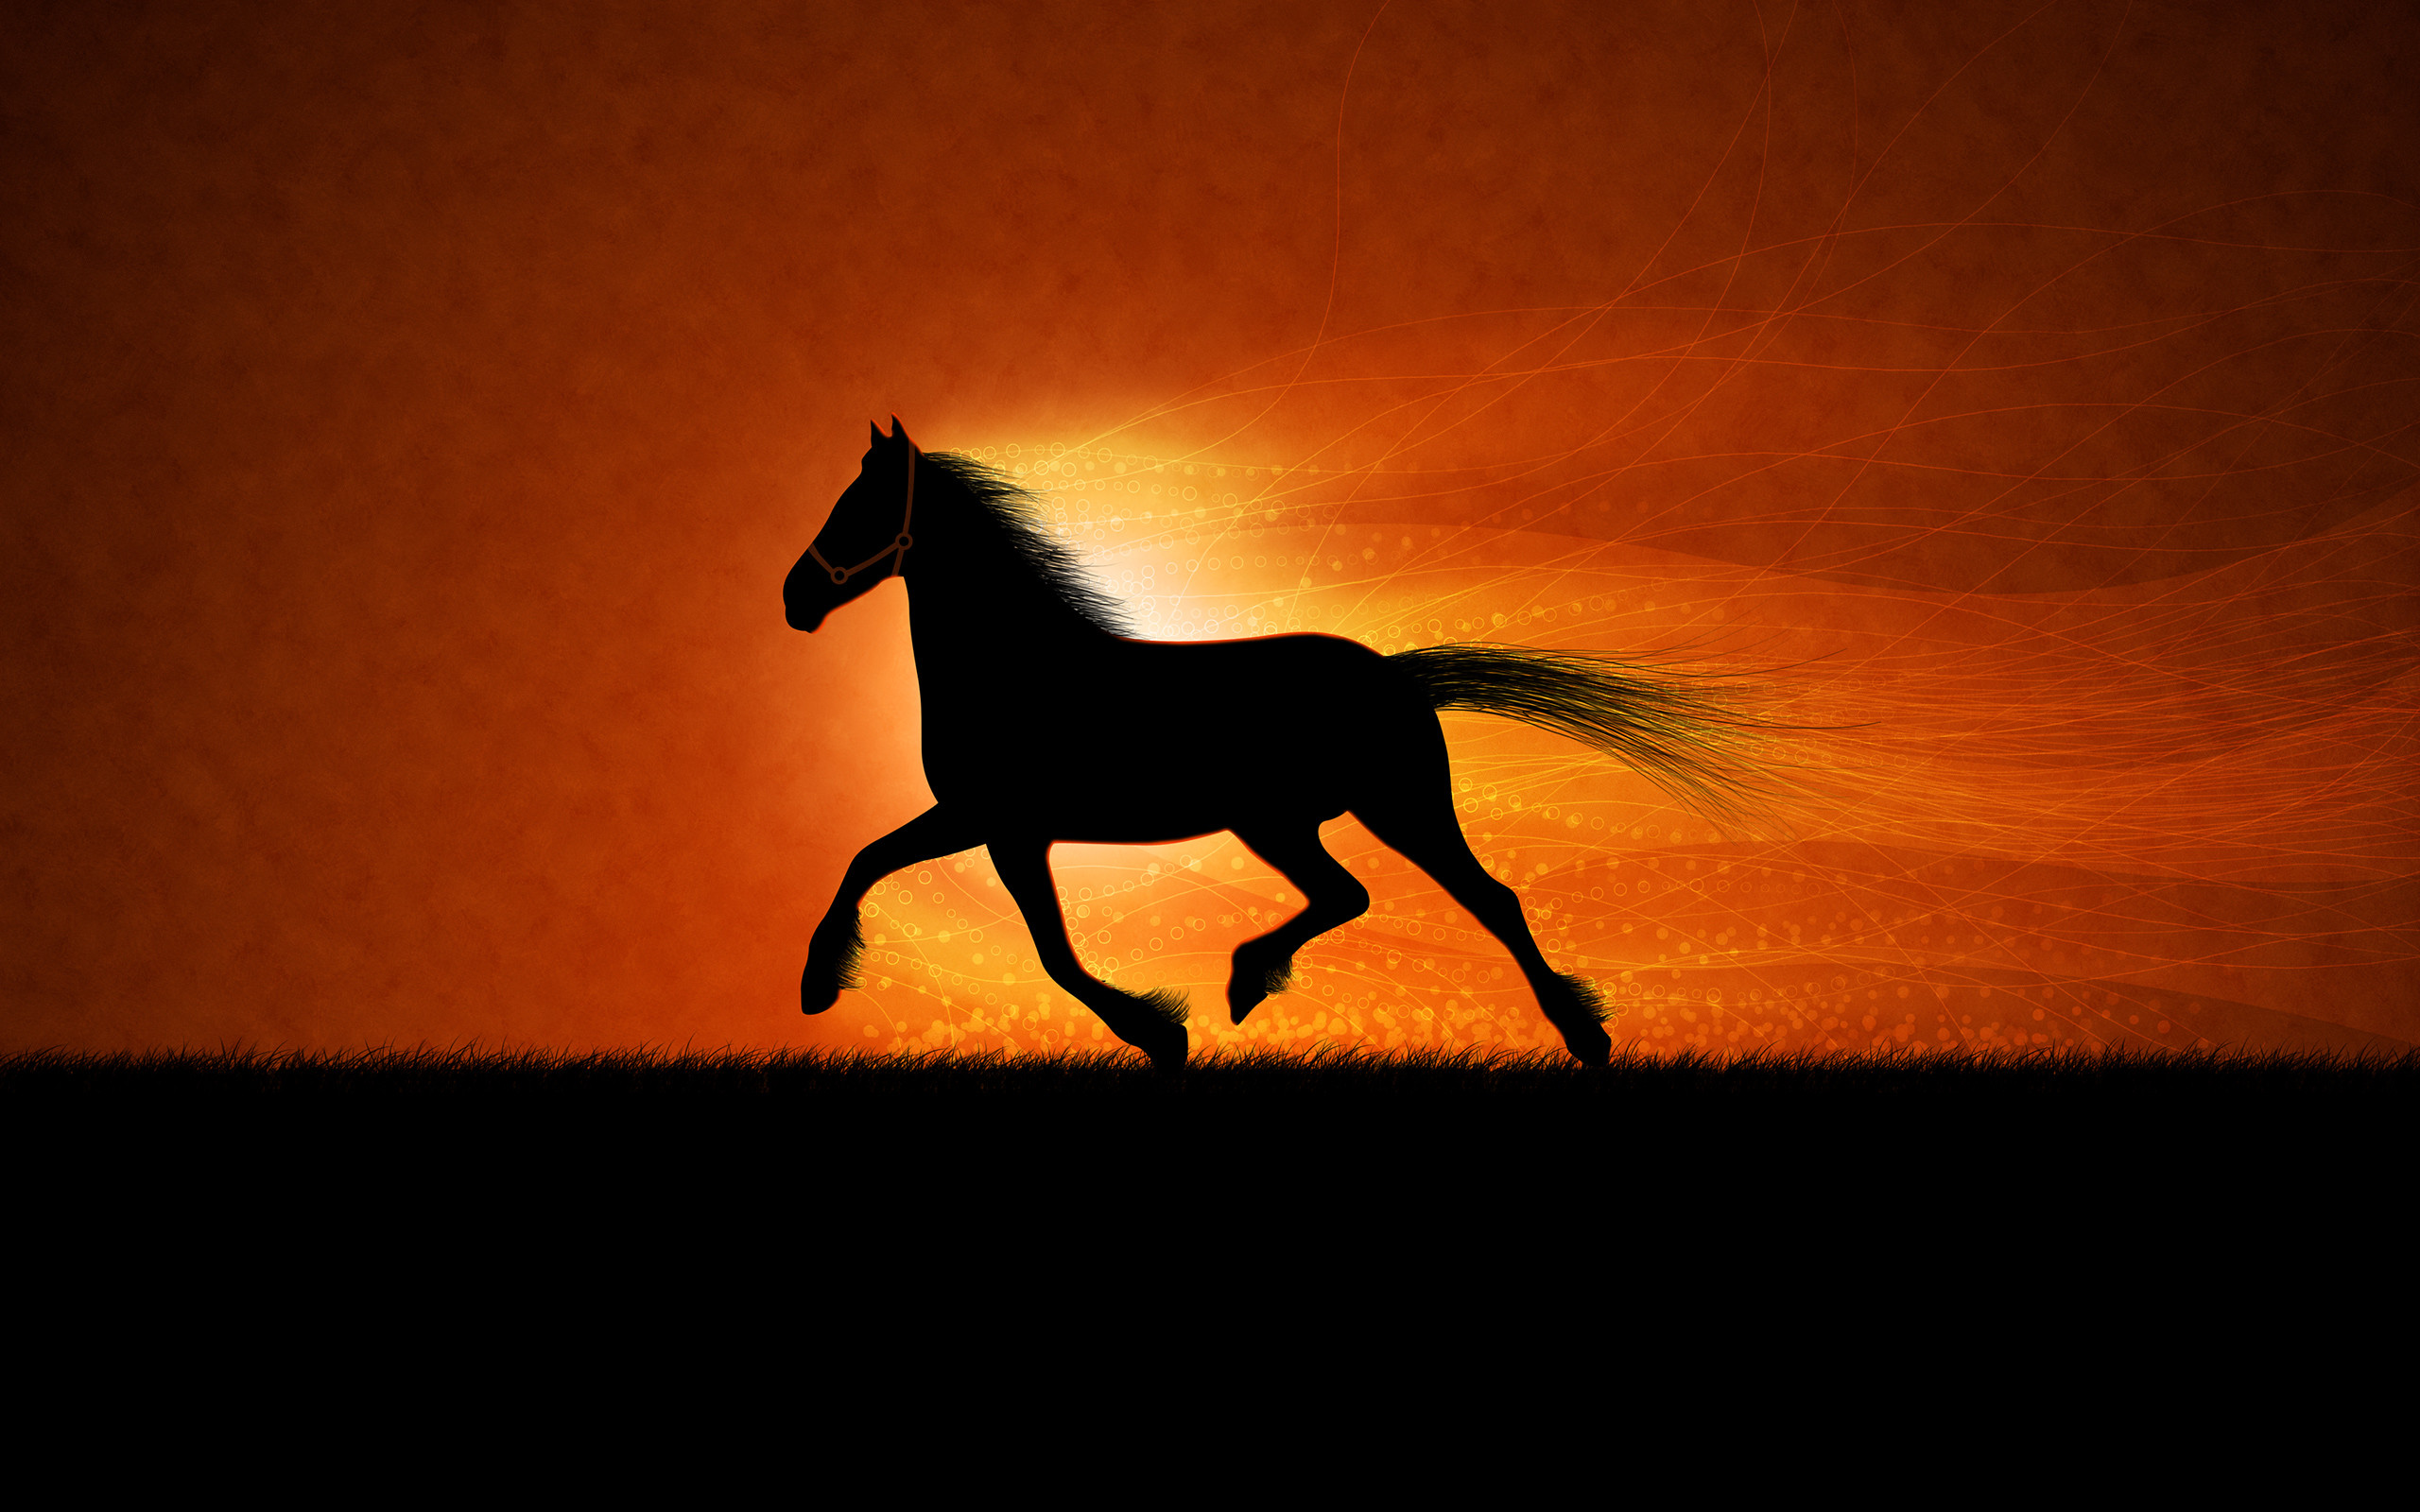 2560x1600 0 horse wallpaper hd horse wallpaper hd